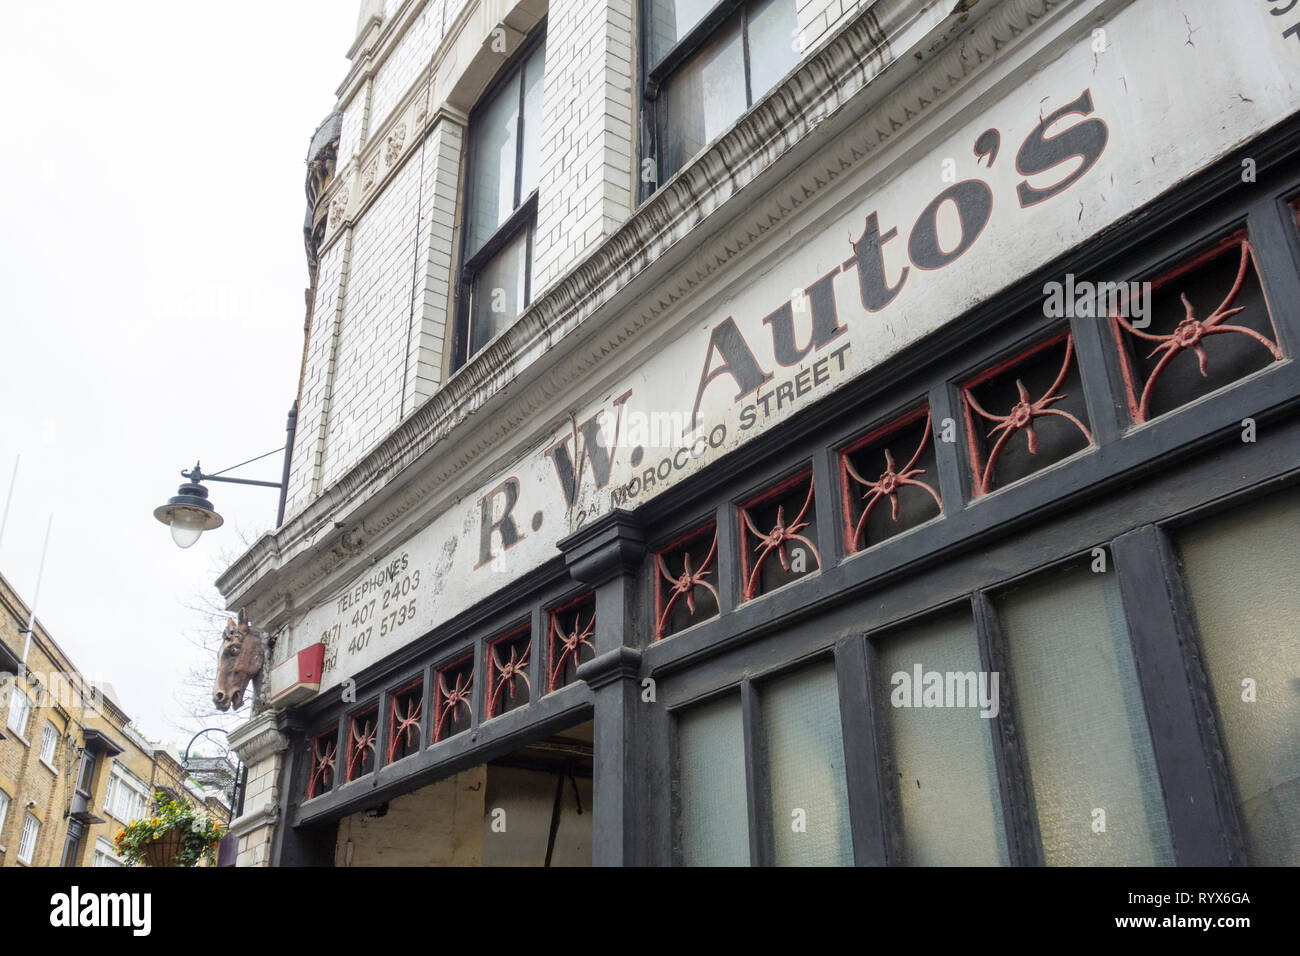 R.W. Autos on Morocco Street, Southwark, London, UK - Stock Image